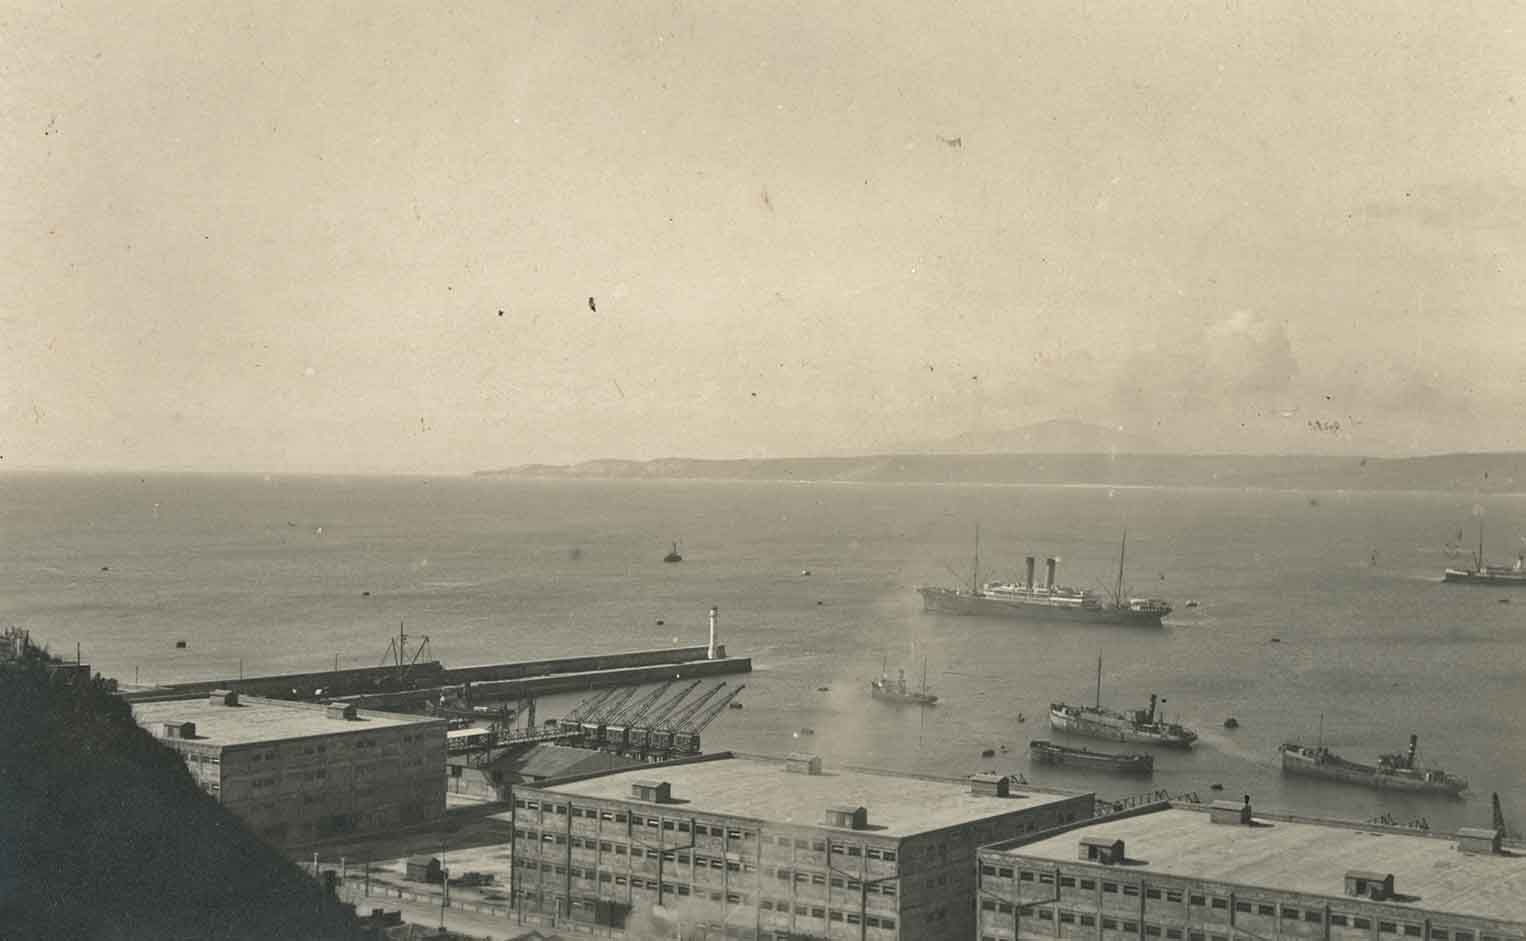 Enterreno - Fotos históricas de chile - fotos antiguas de Chile - Bahía de Valparaíso en 1924